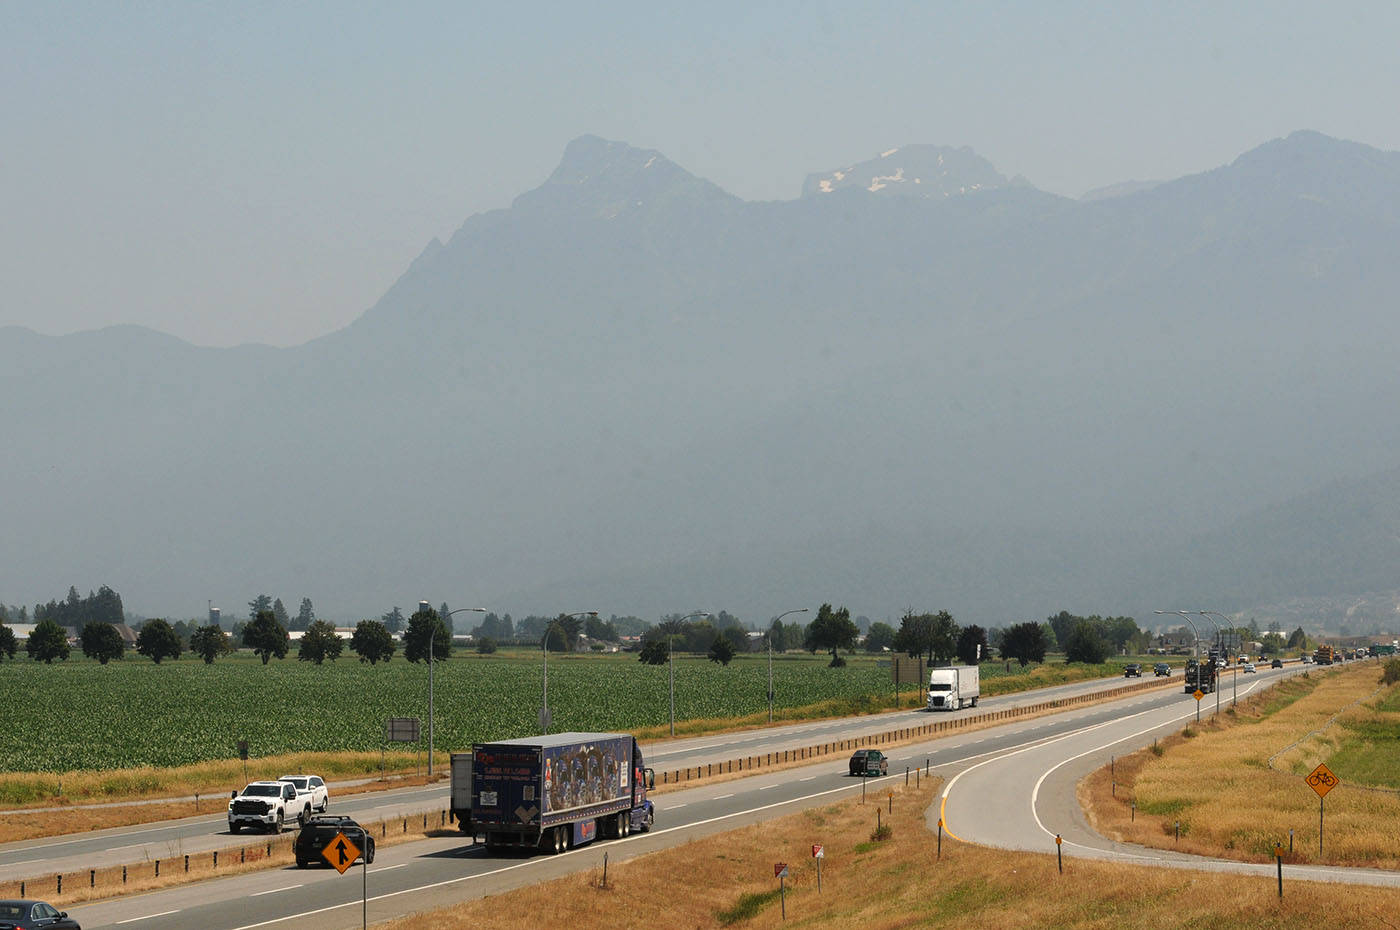 A view of Mt. Cheam looking east from Prest Road on Tuesday, July 6, 2021. (Jenna Hauck/ Chilliwack Progress)